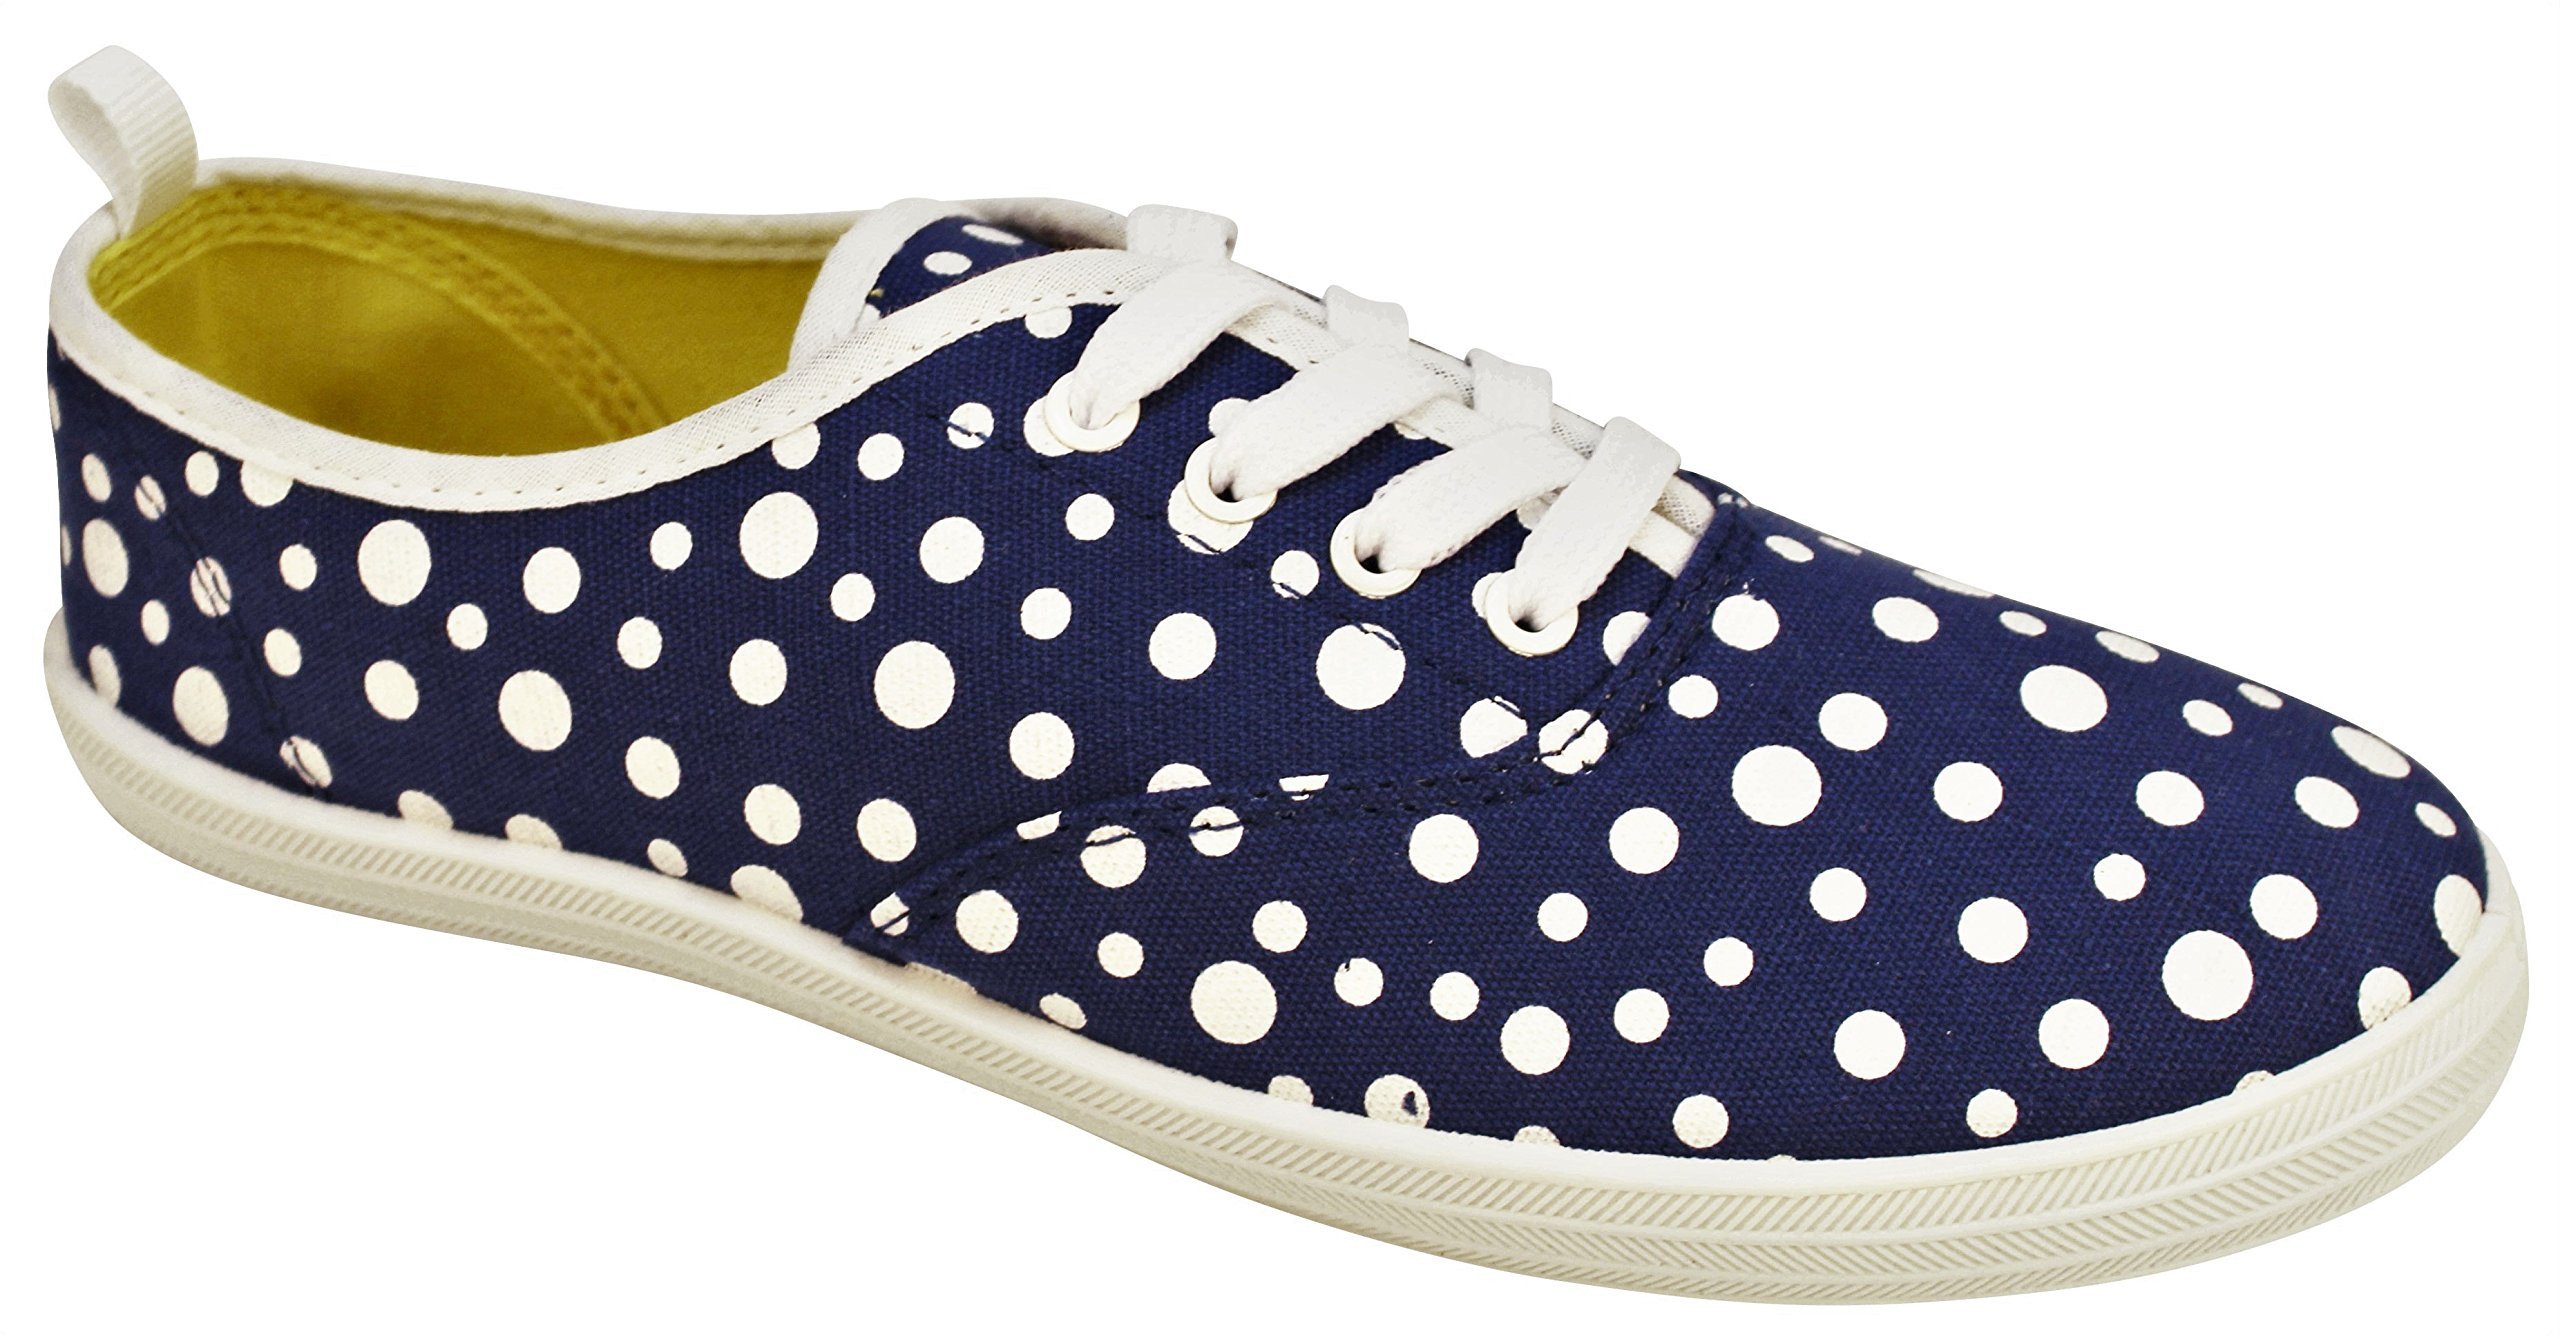 Take A Walk in Womens Fashion Canvas Lace-up Sneaker צ Prints and Mono Colors (9, Royal Blue Dot)